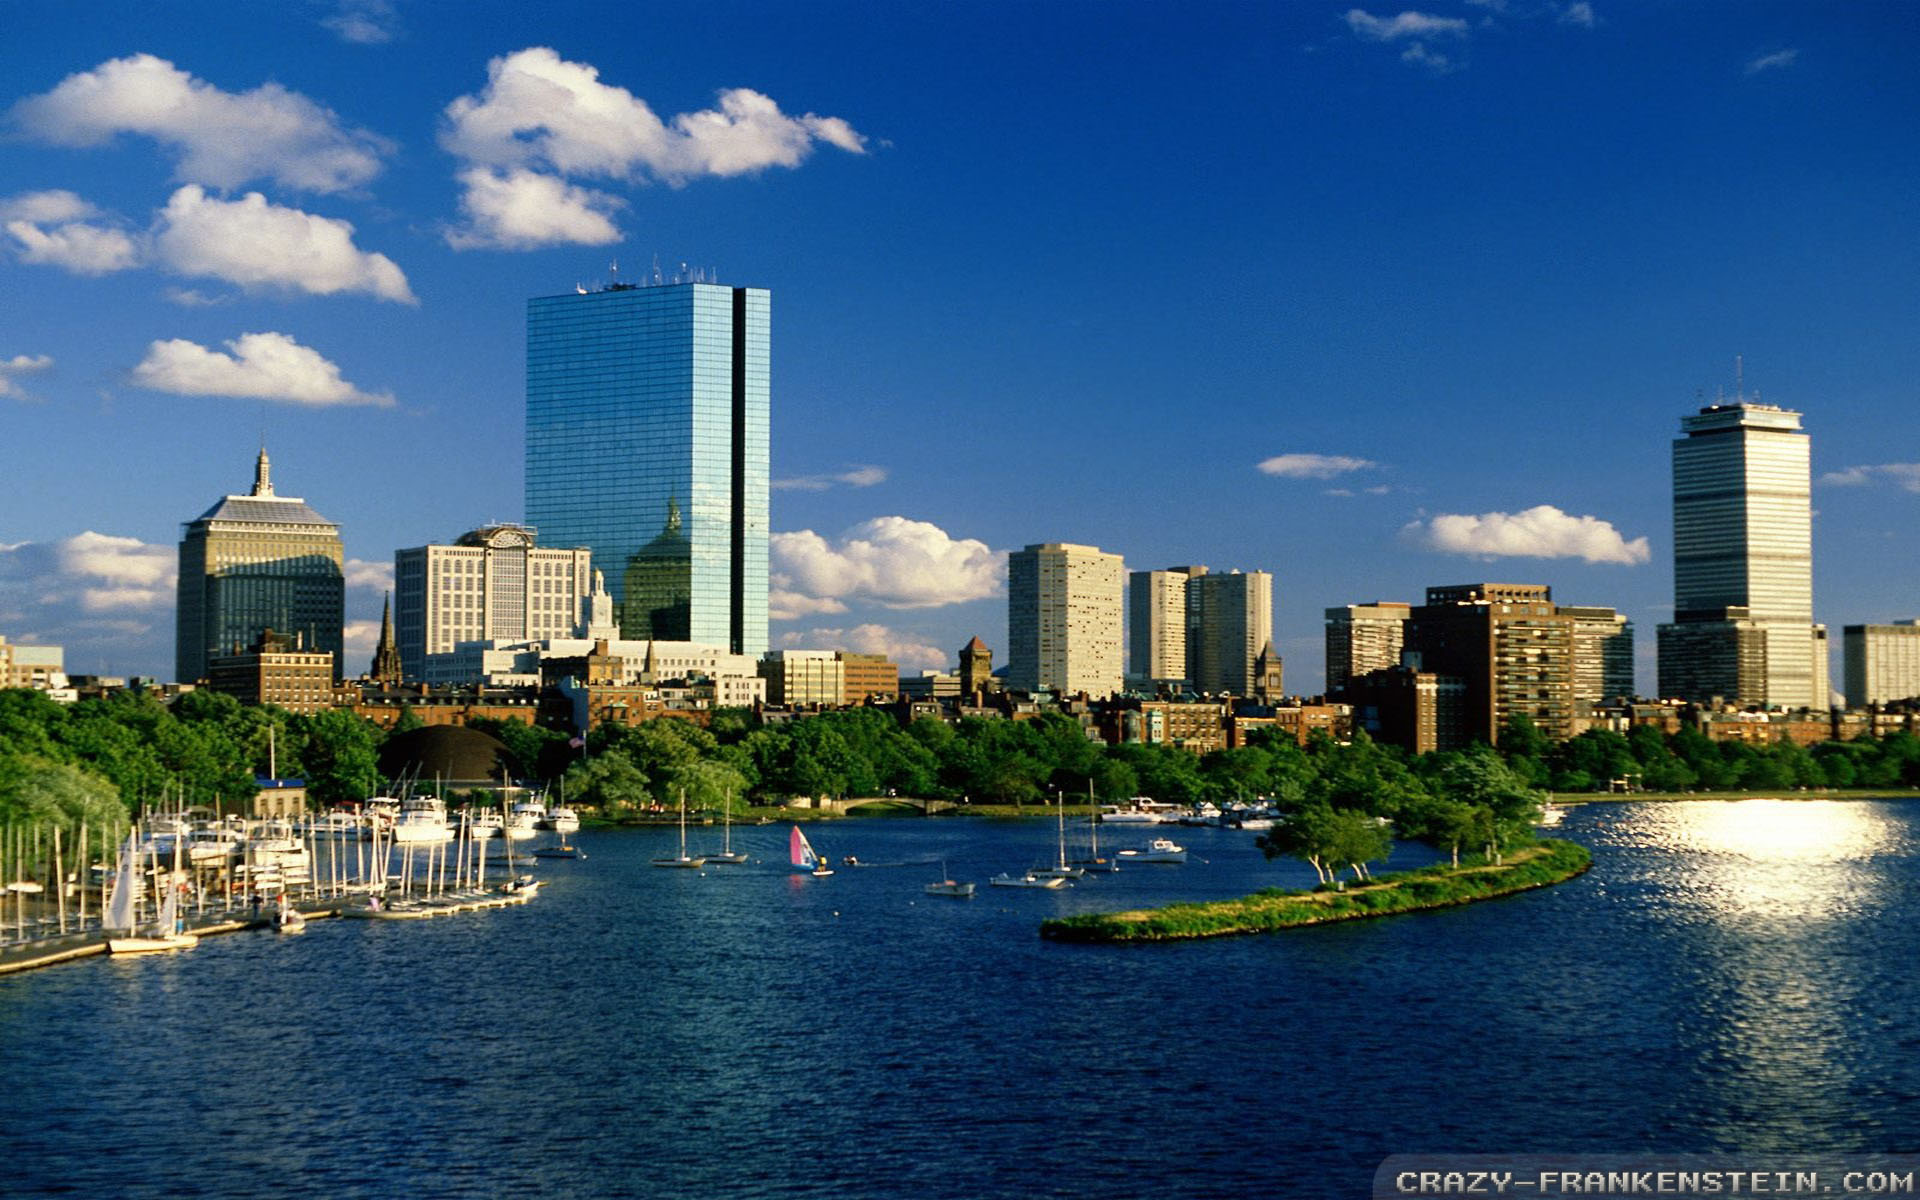 Wallpaper: Boston wallpapers. Resolution: 1024x768 | 1280x1024 | 1600x1200. Widescreen Res: 1440x900 | 1680x1050 | 1920x1200